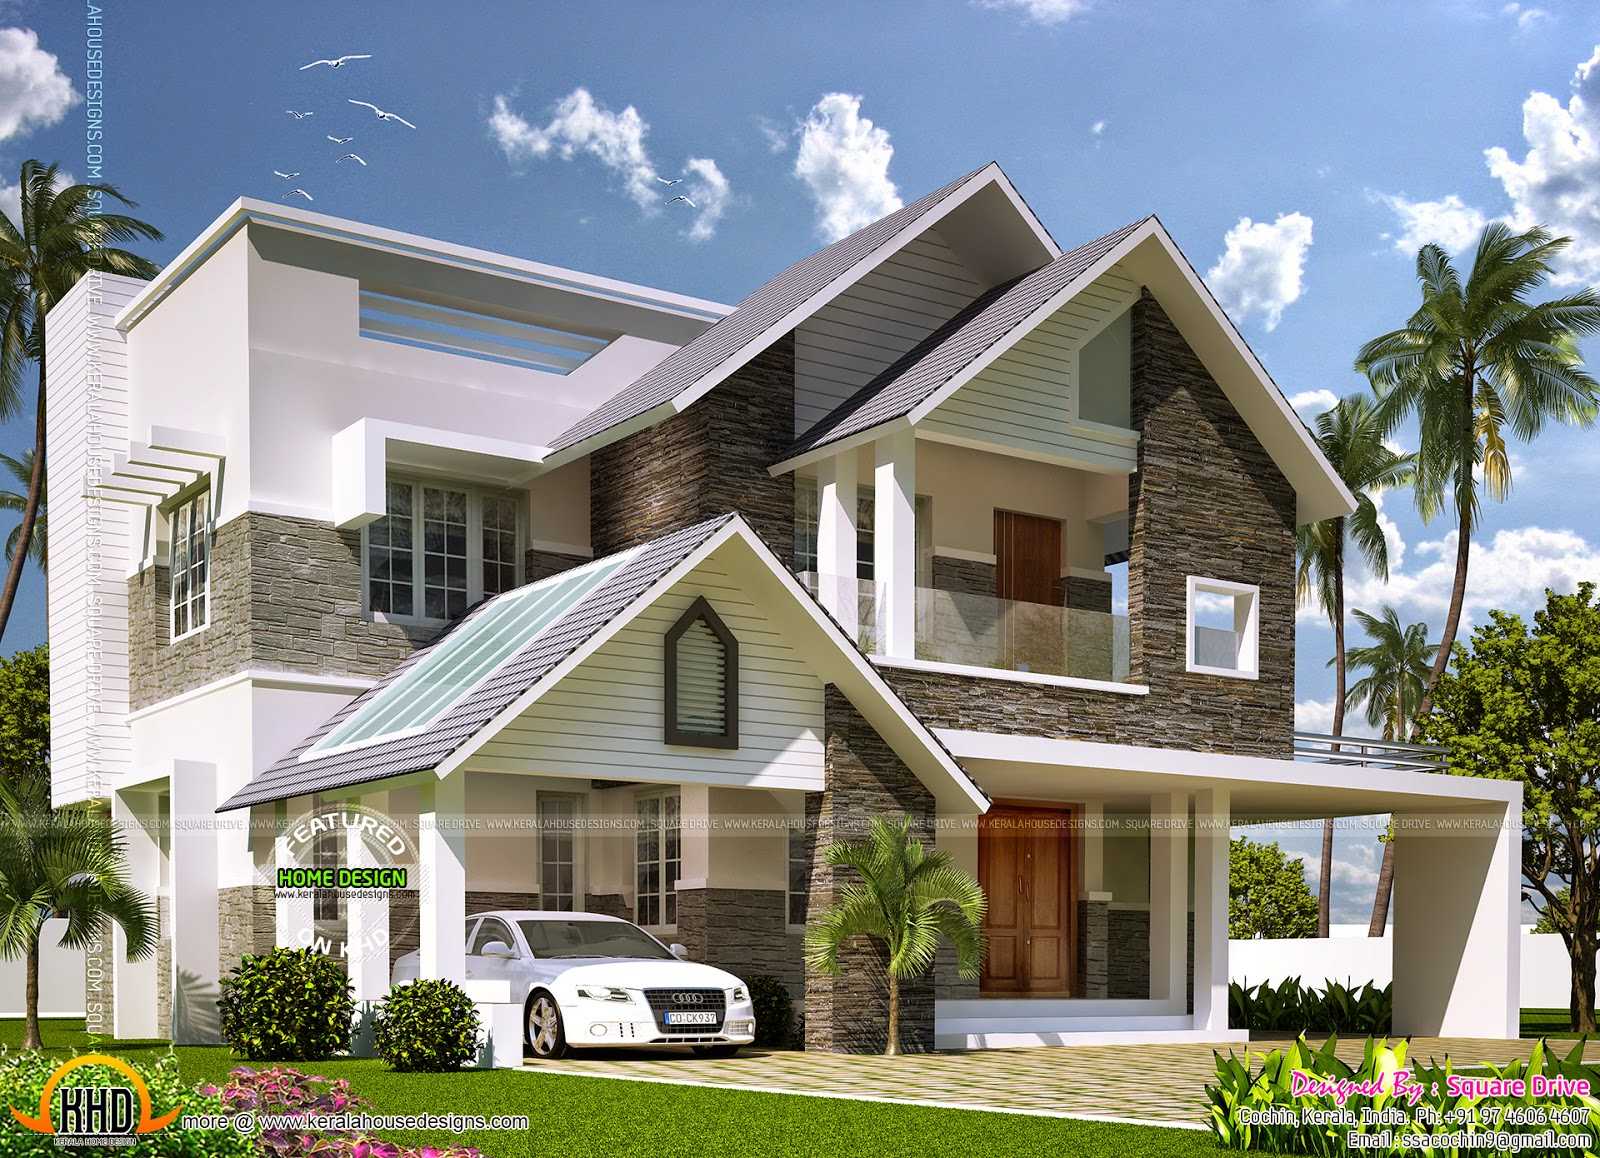 Roof Design Ideas: Modern Sloping Roof Mix Villa Exterior